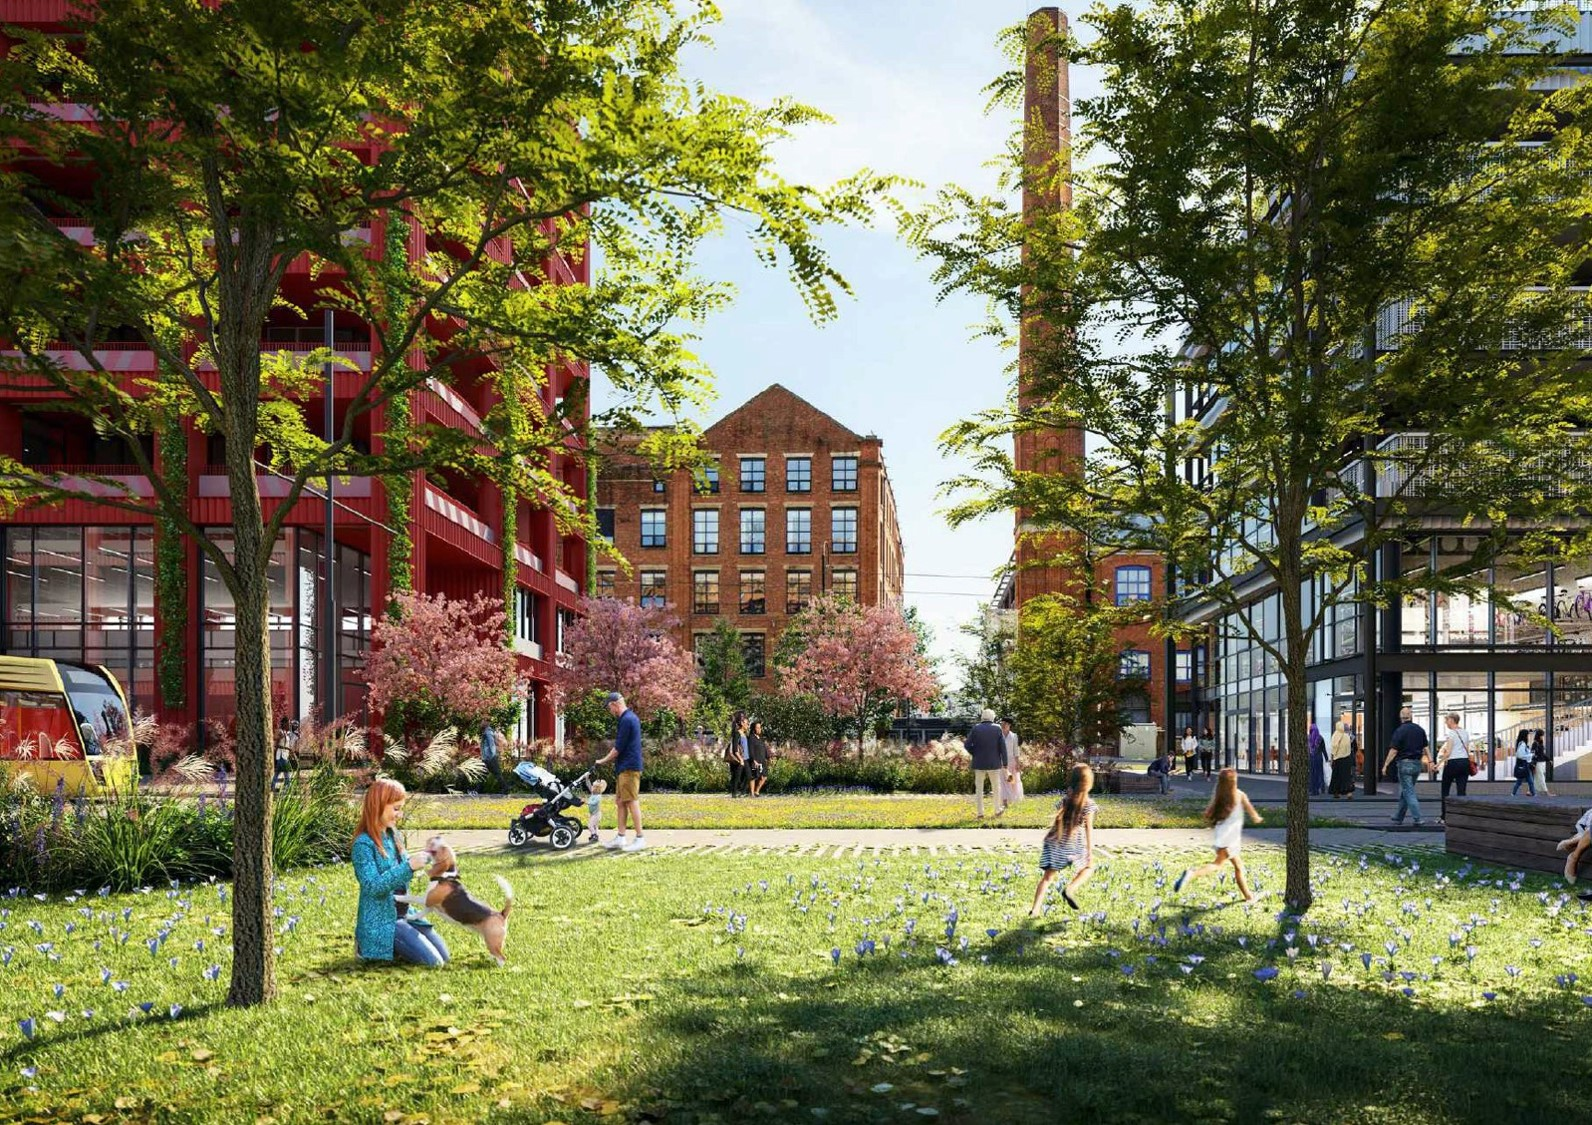 A 'pioneering' Pollard Street scheme is to bring a wealth of social benefits to Manchester, The Manc